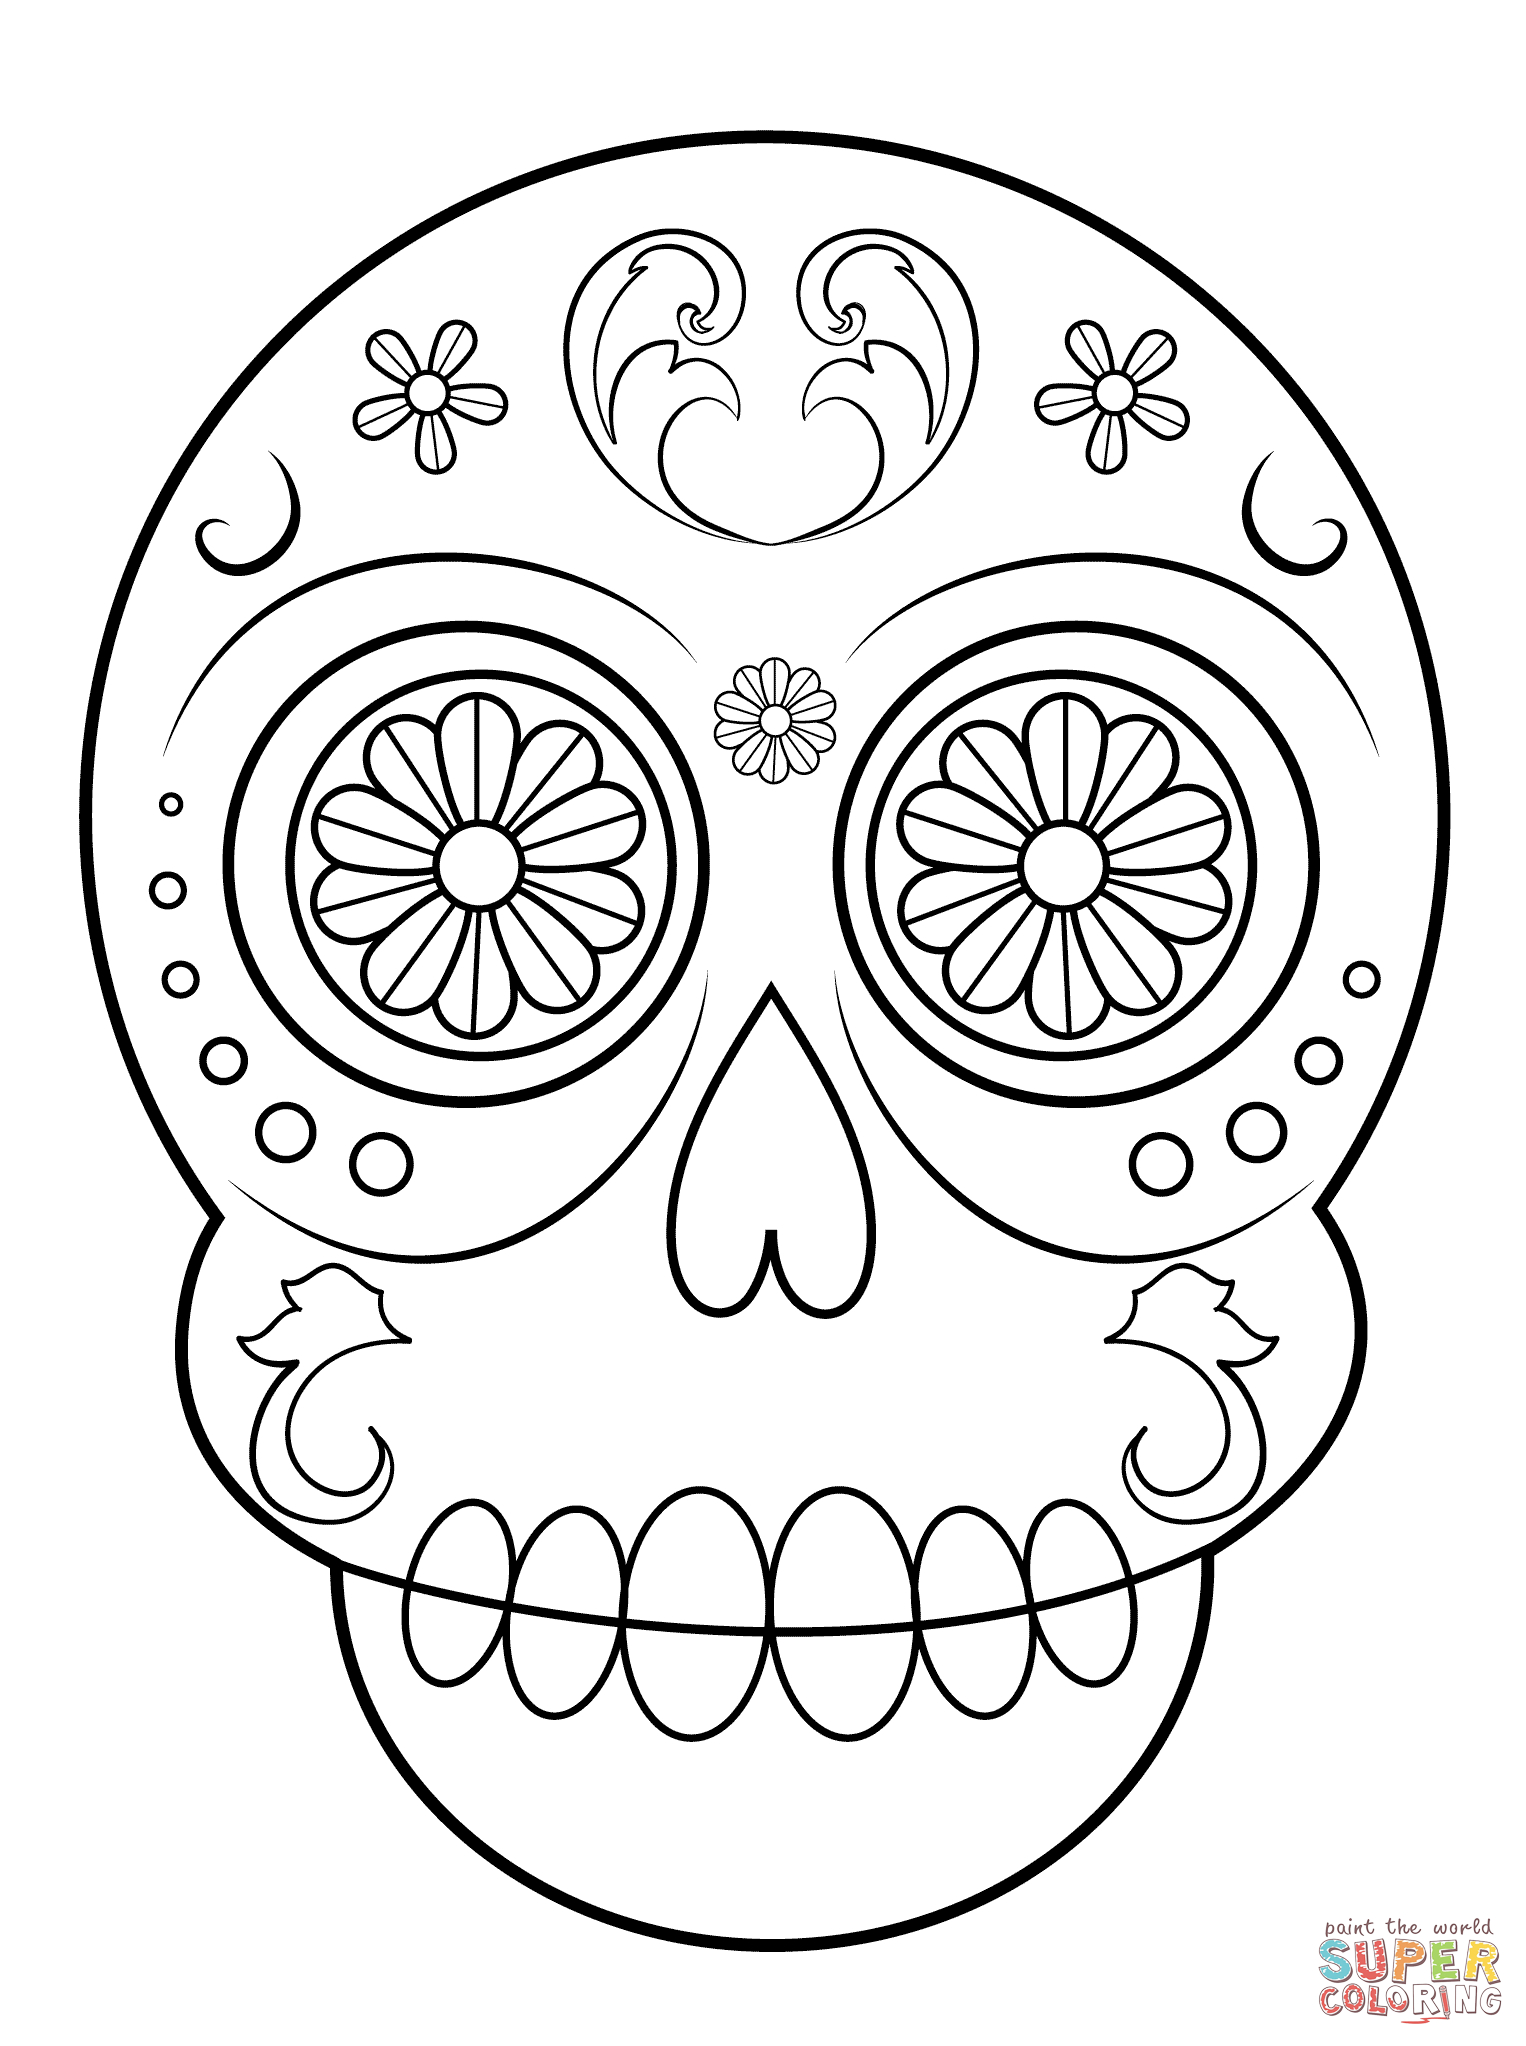 Simple Sugar Skull Coloring Page | Free Printable Coloring Pages - Free Printable Sugar Skull Day Of The Dead Mask